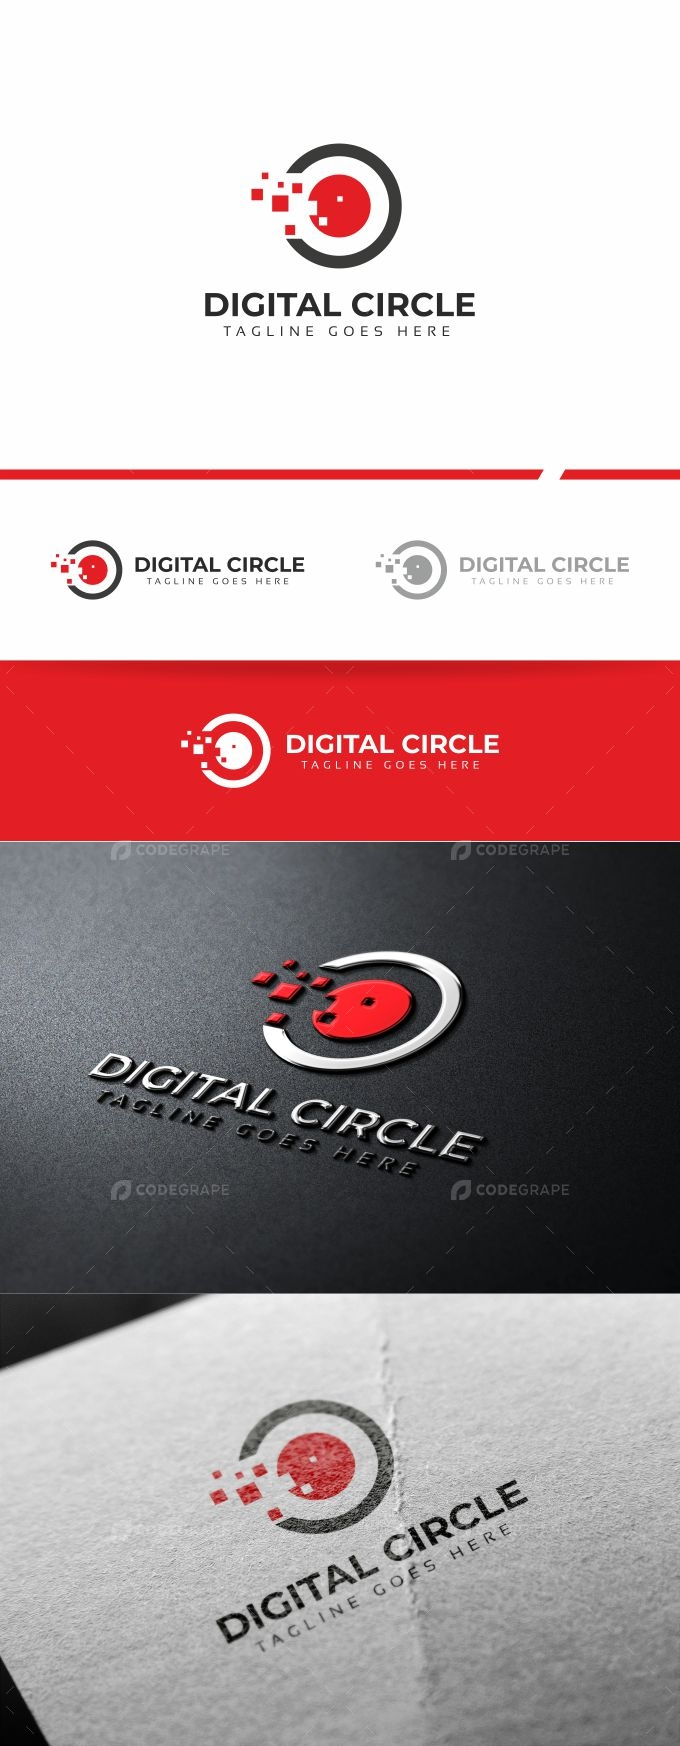 Digital Circle Logo